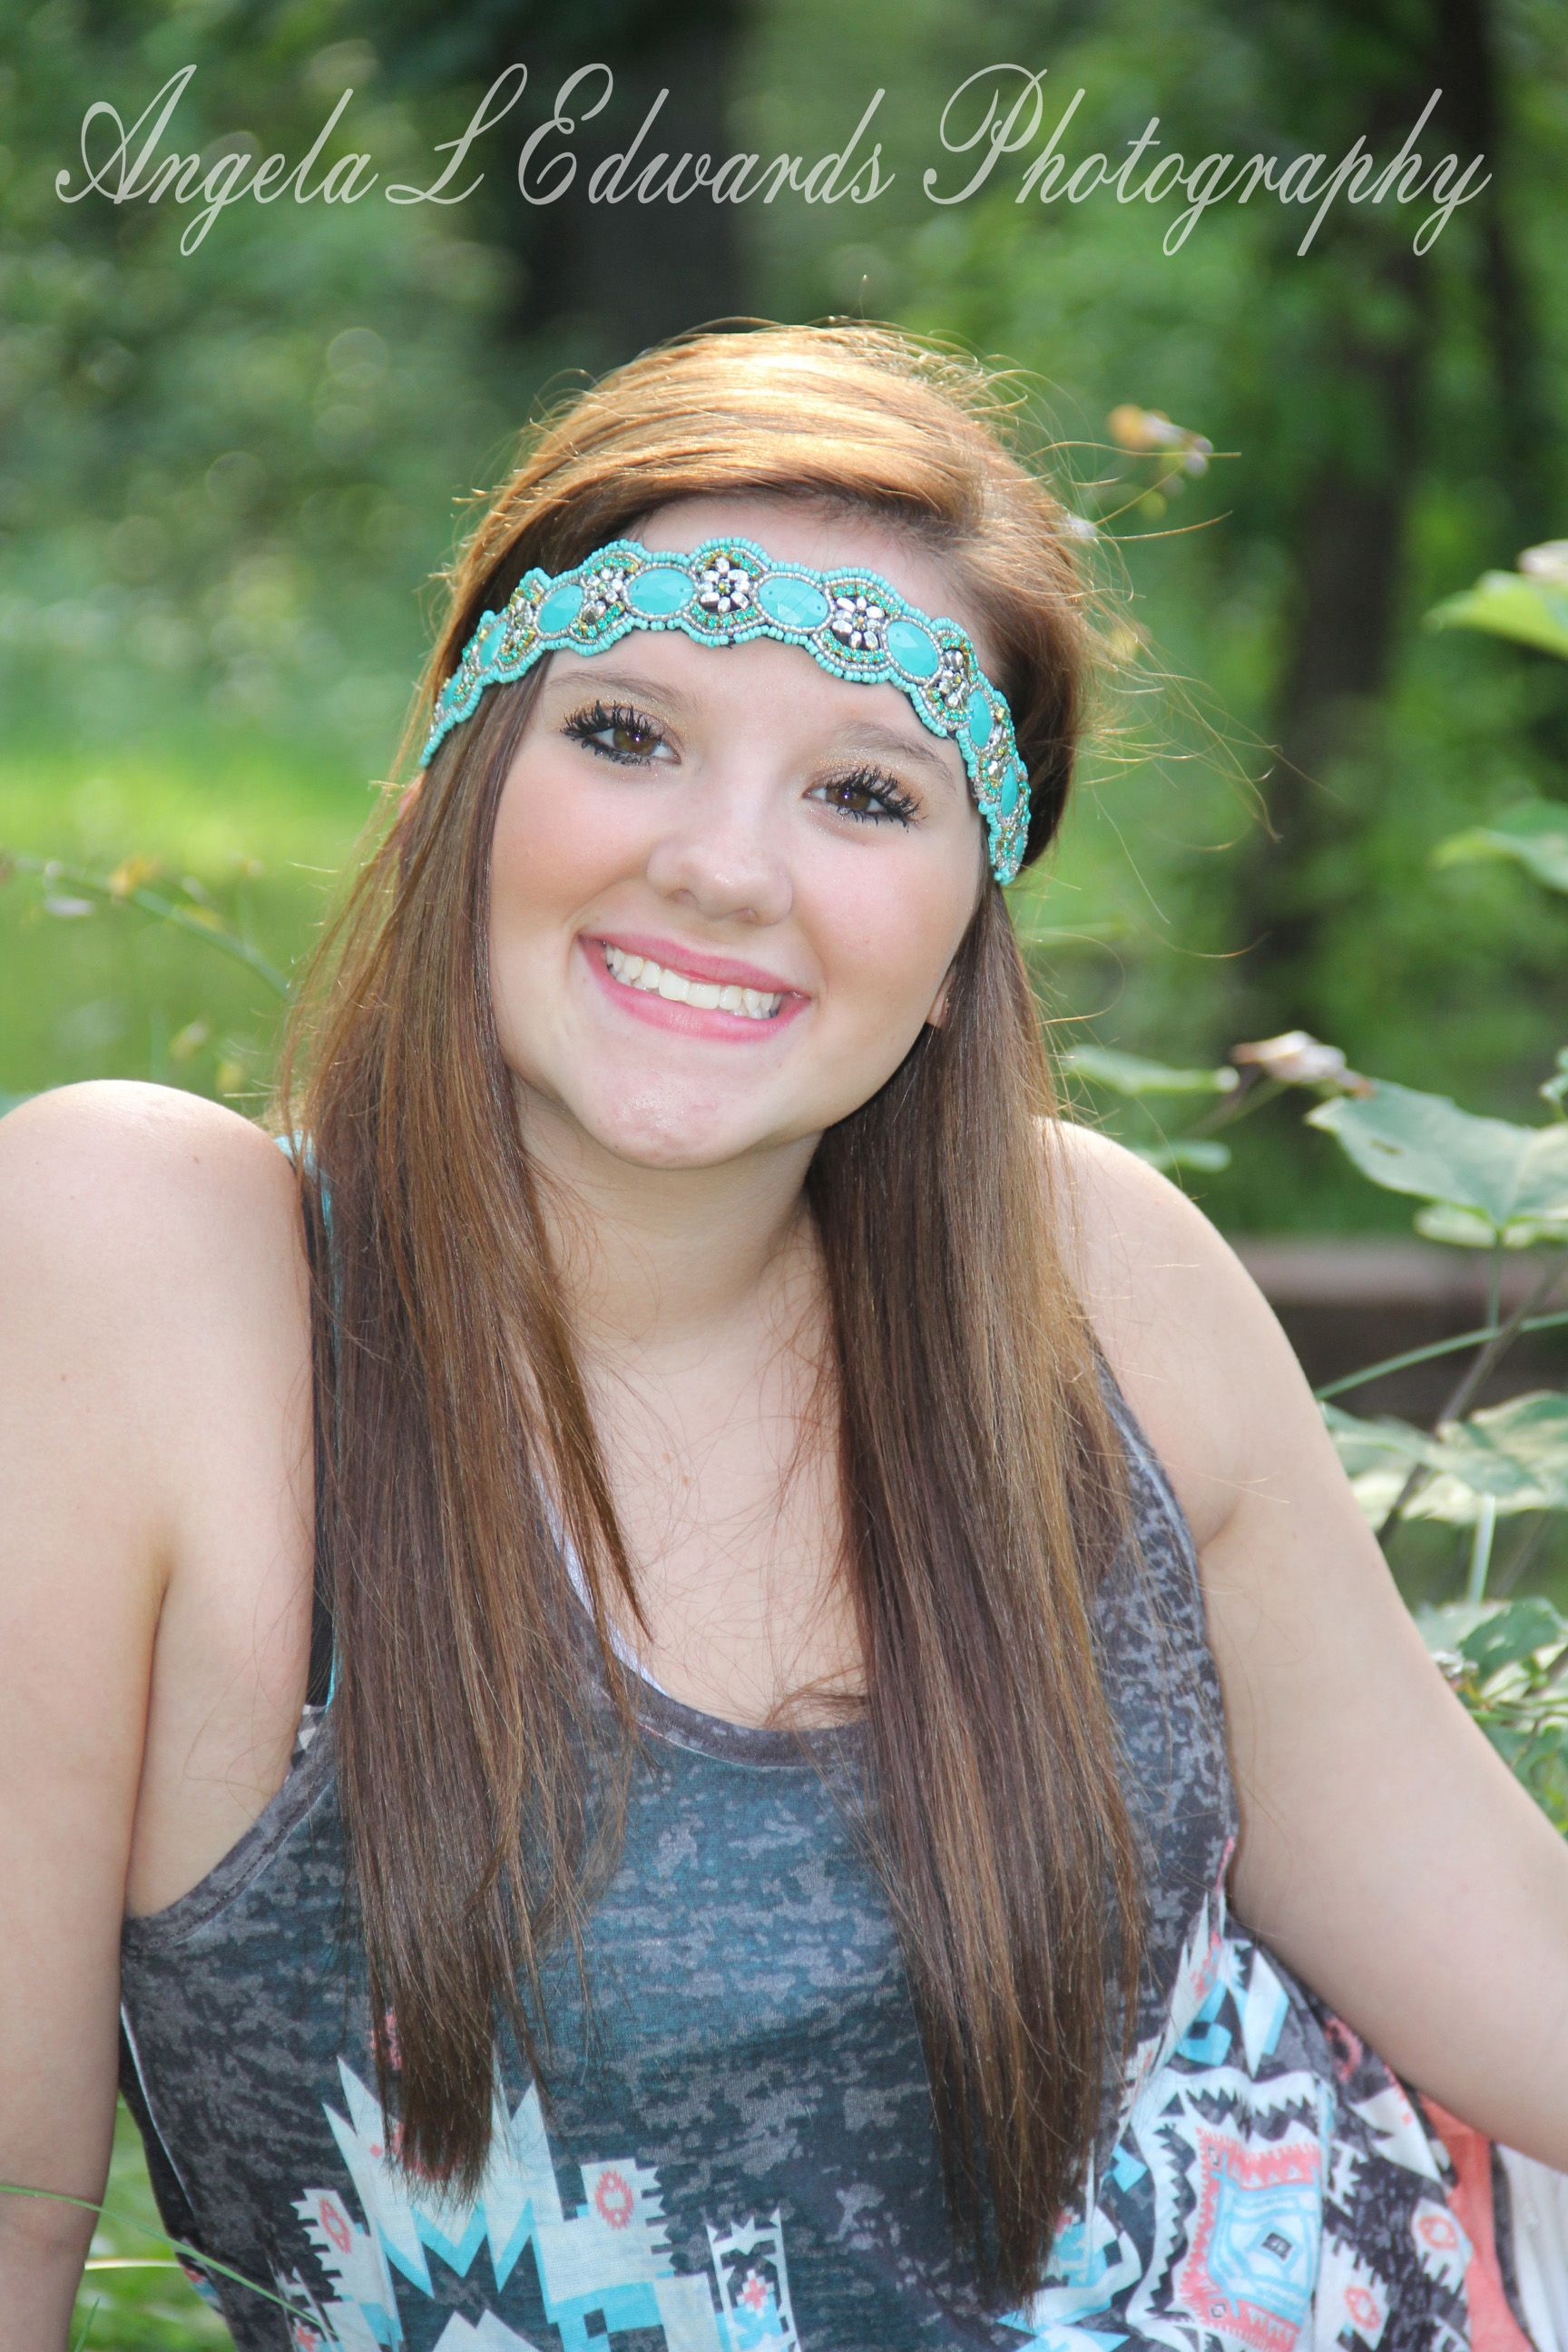 Angela L Edwards photography  My beautiful daughter #nature #summer #headband